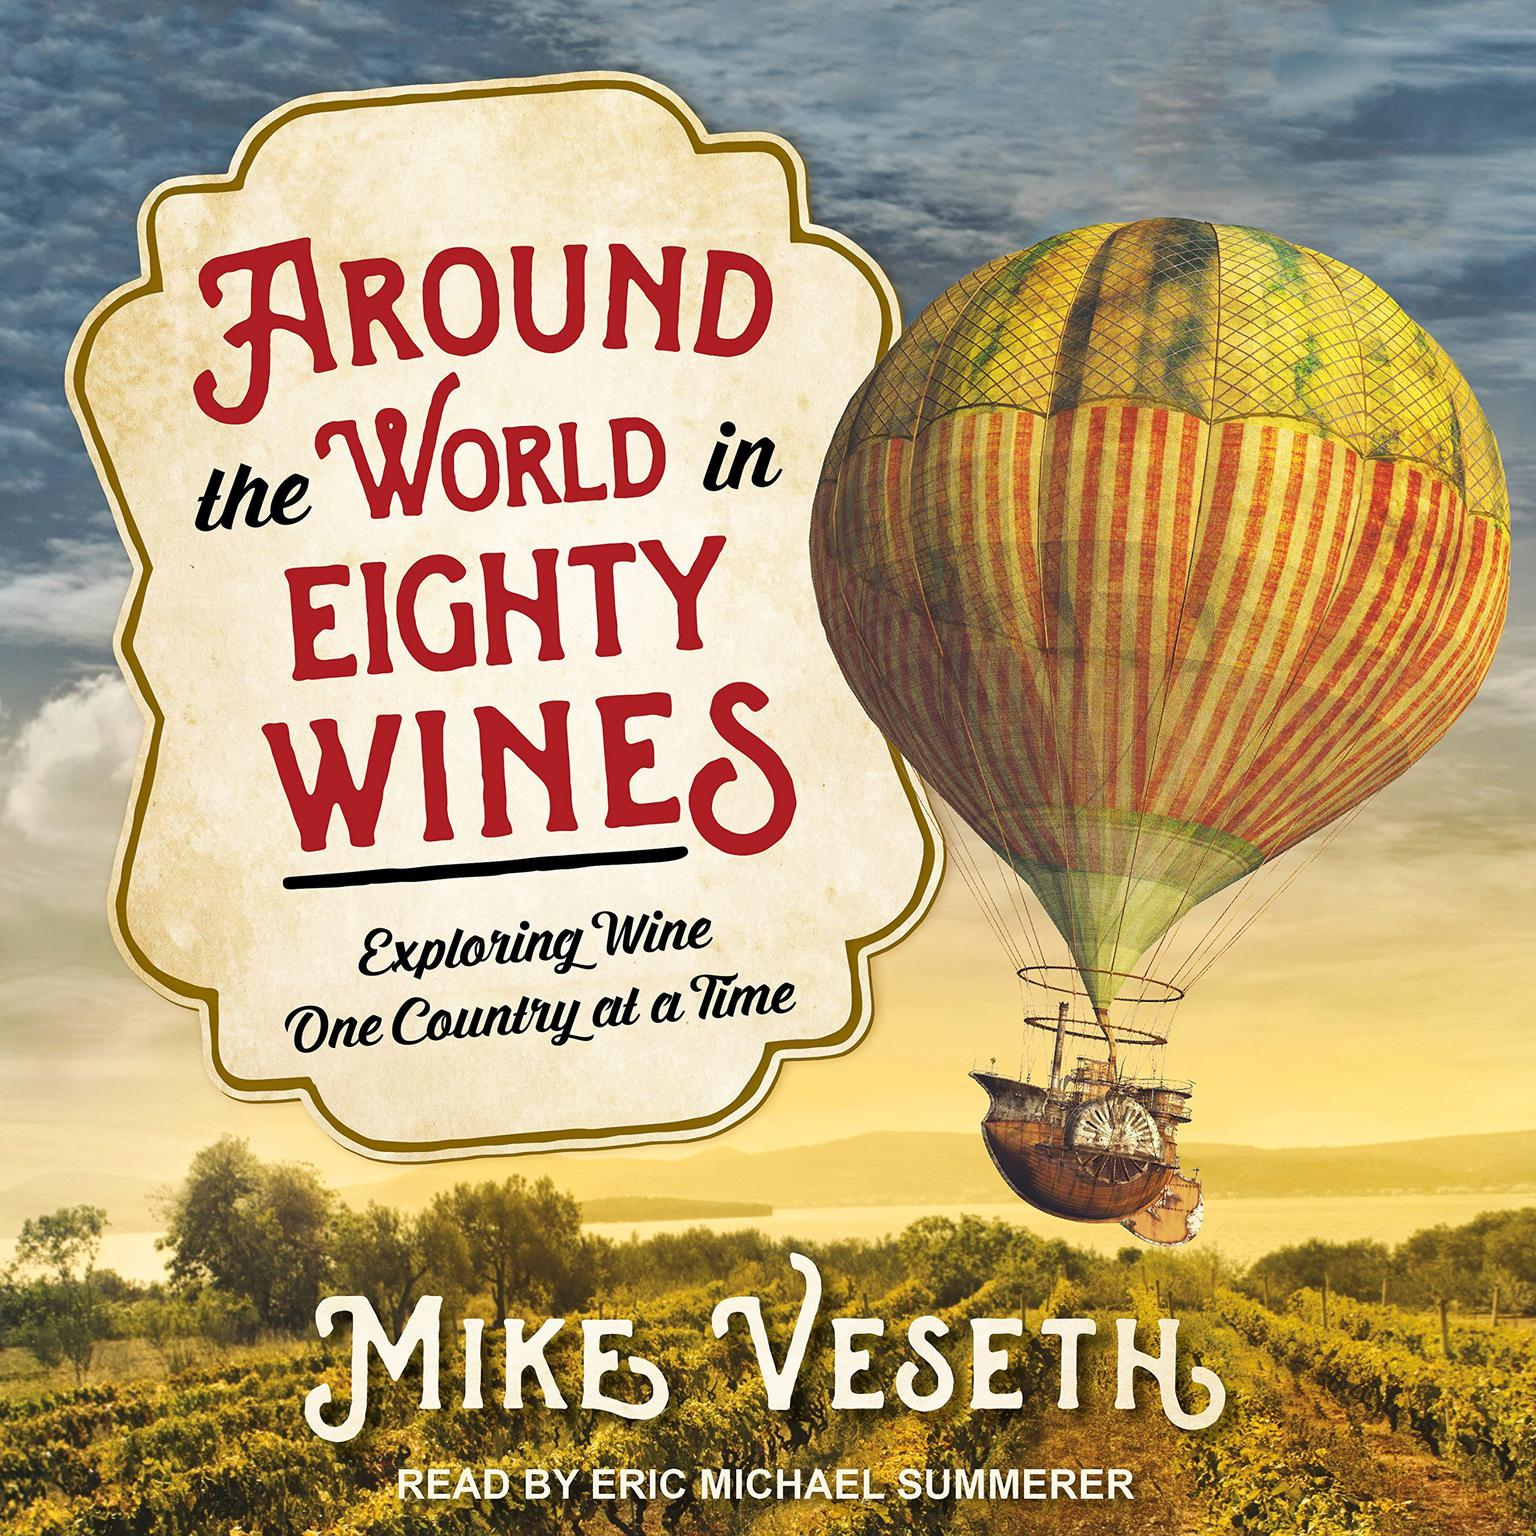 Around the World in Eighty Wines: Exploring Wine One Country at a Time Audiobook, by Mike Veseth